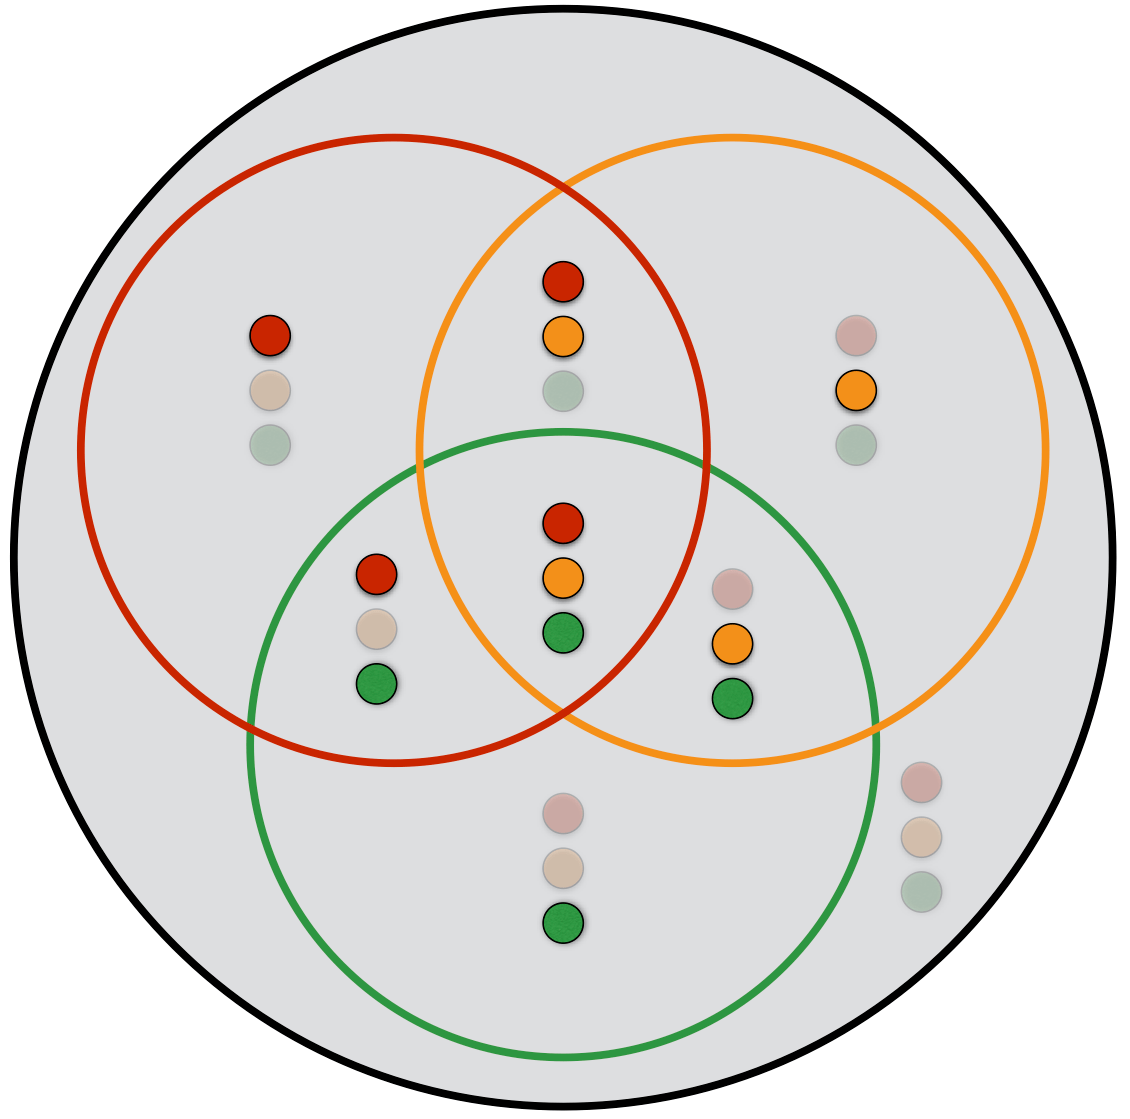 hight resolution of this diagram shows the state represented by each region